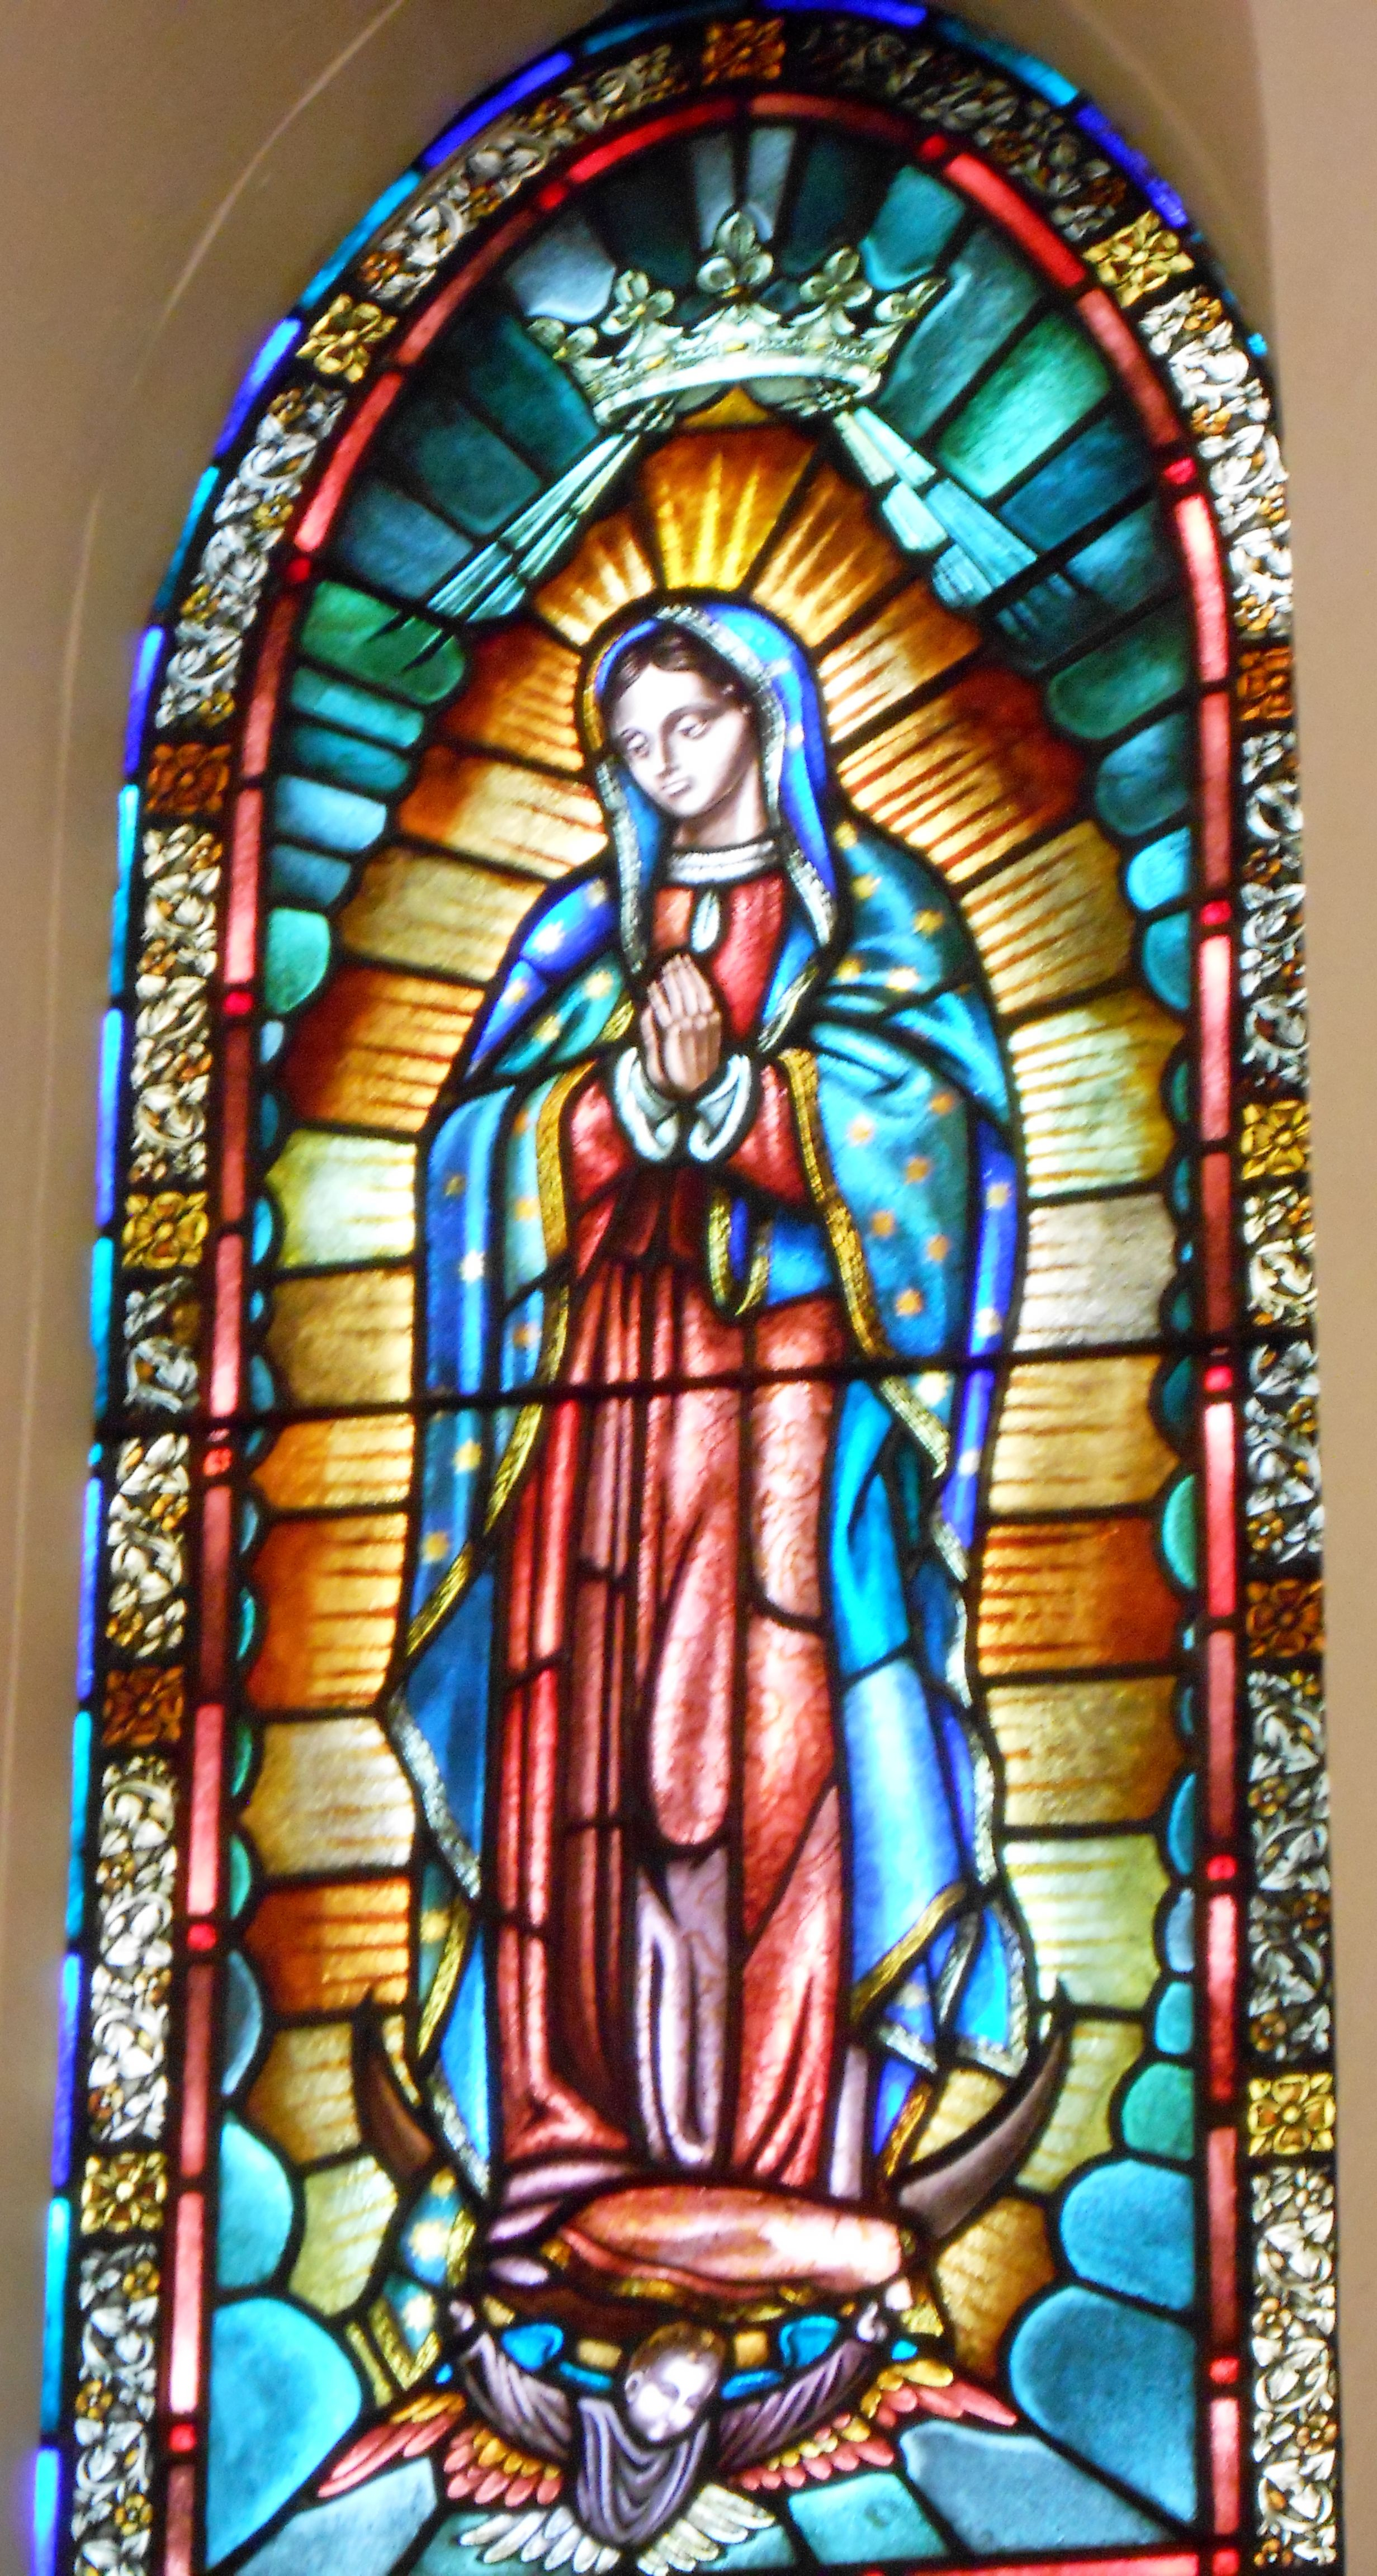 Stained Glass At The St Francis Cathedral In Santa Fe